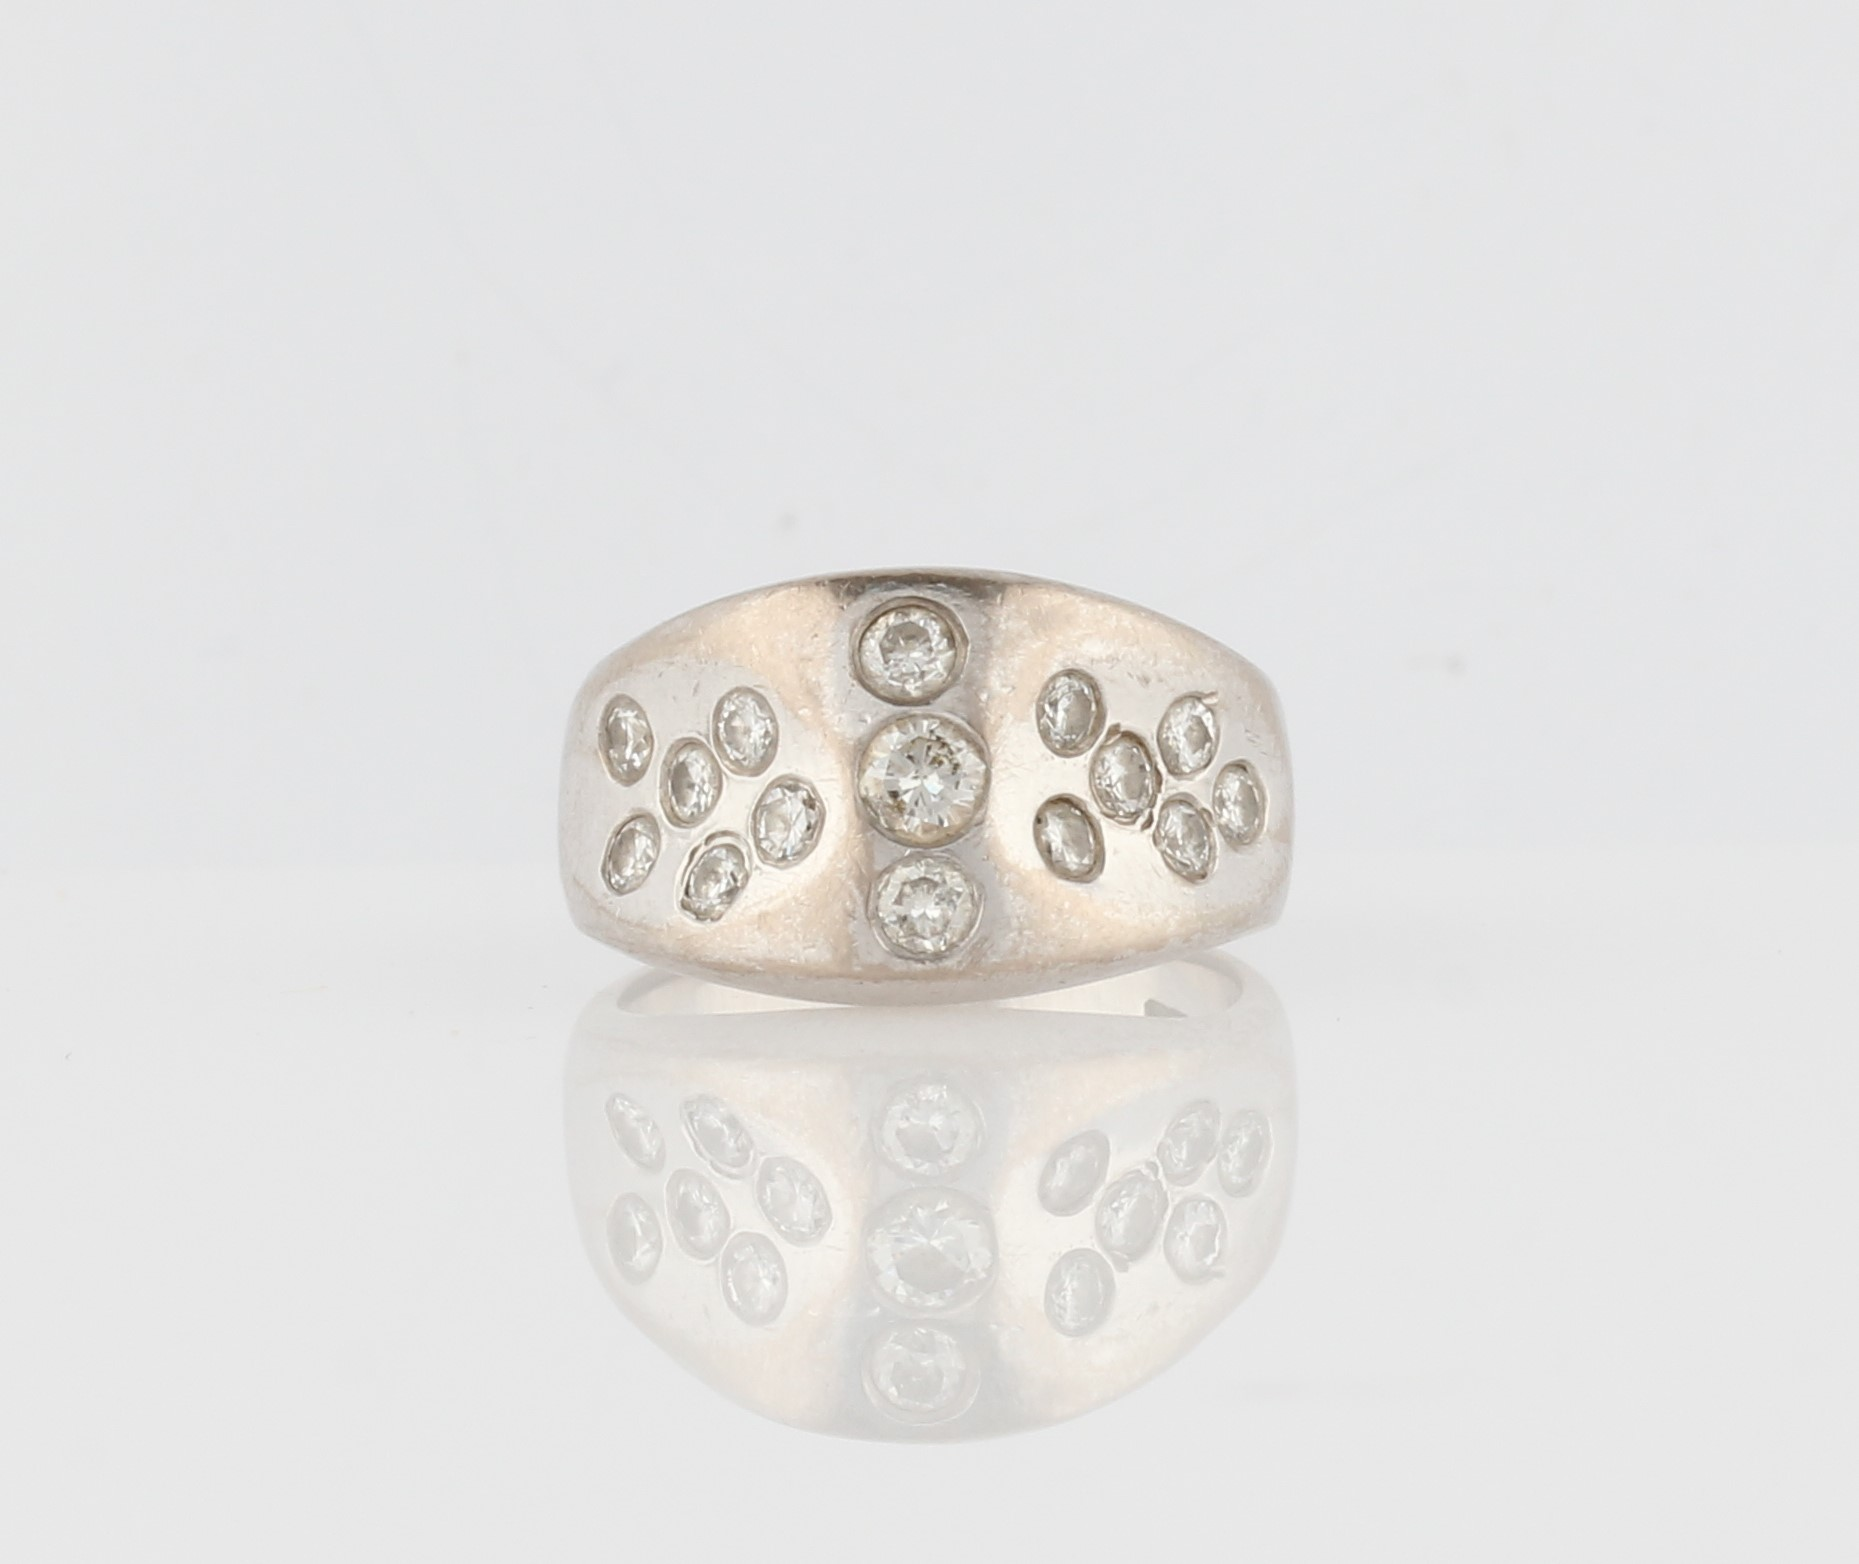 Lot 36 - A hallmarked 18ct white gold diamond ring, the shaped design scattered with variously sized